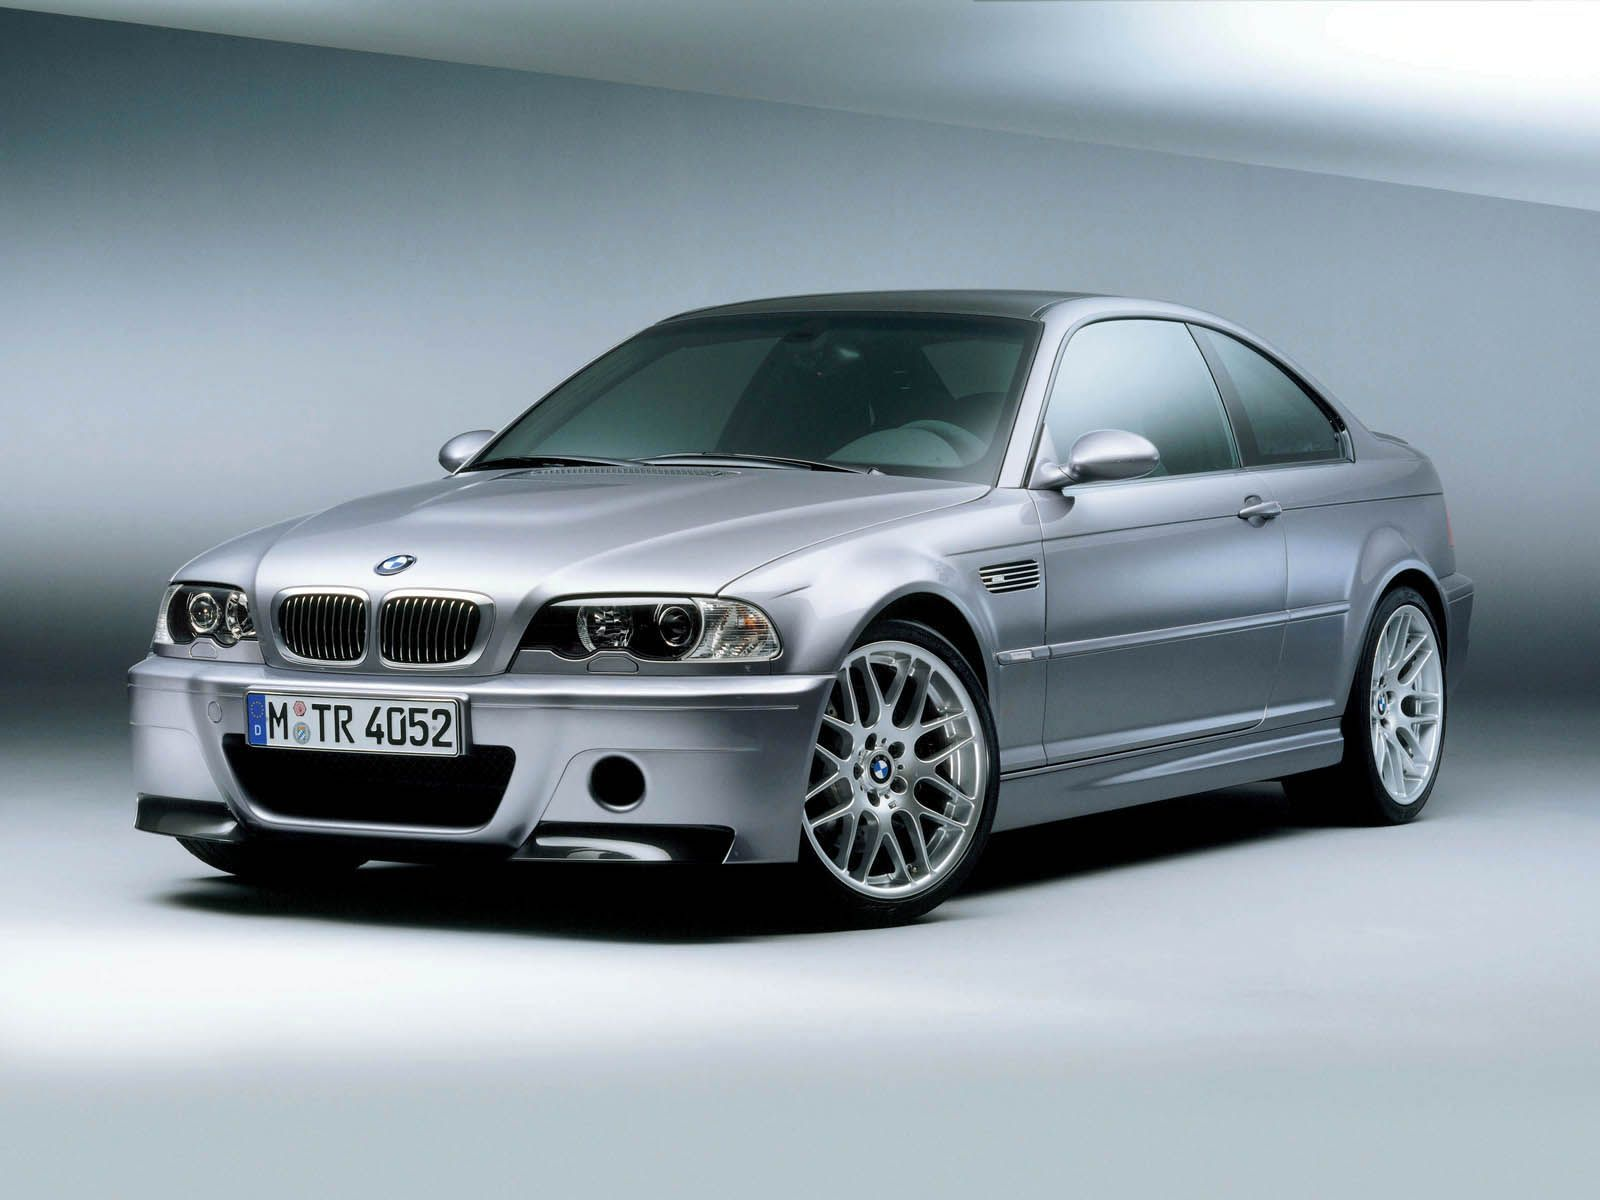 bmw e46 3 series audio upgrades. Black Bedroom Furniture Sets. Home Design Ideas